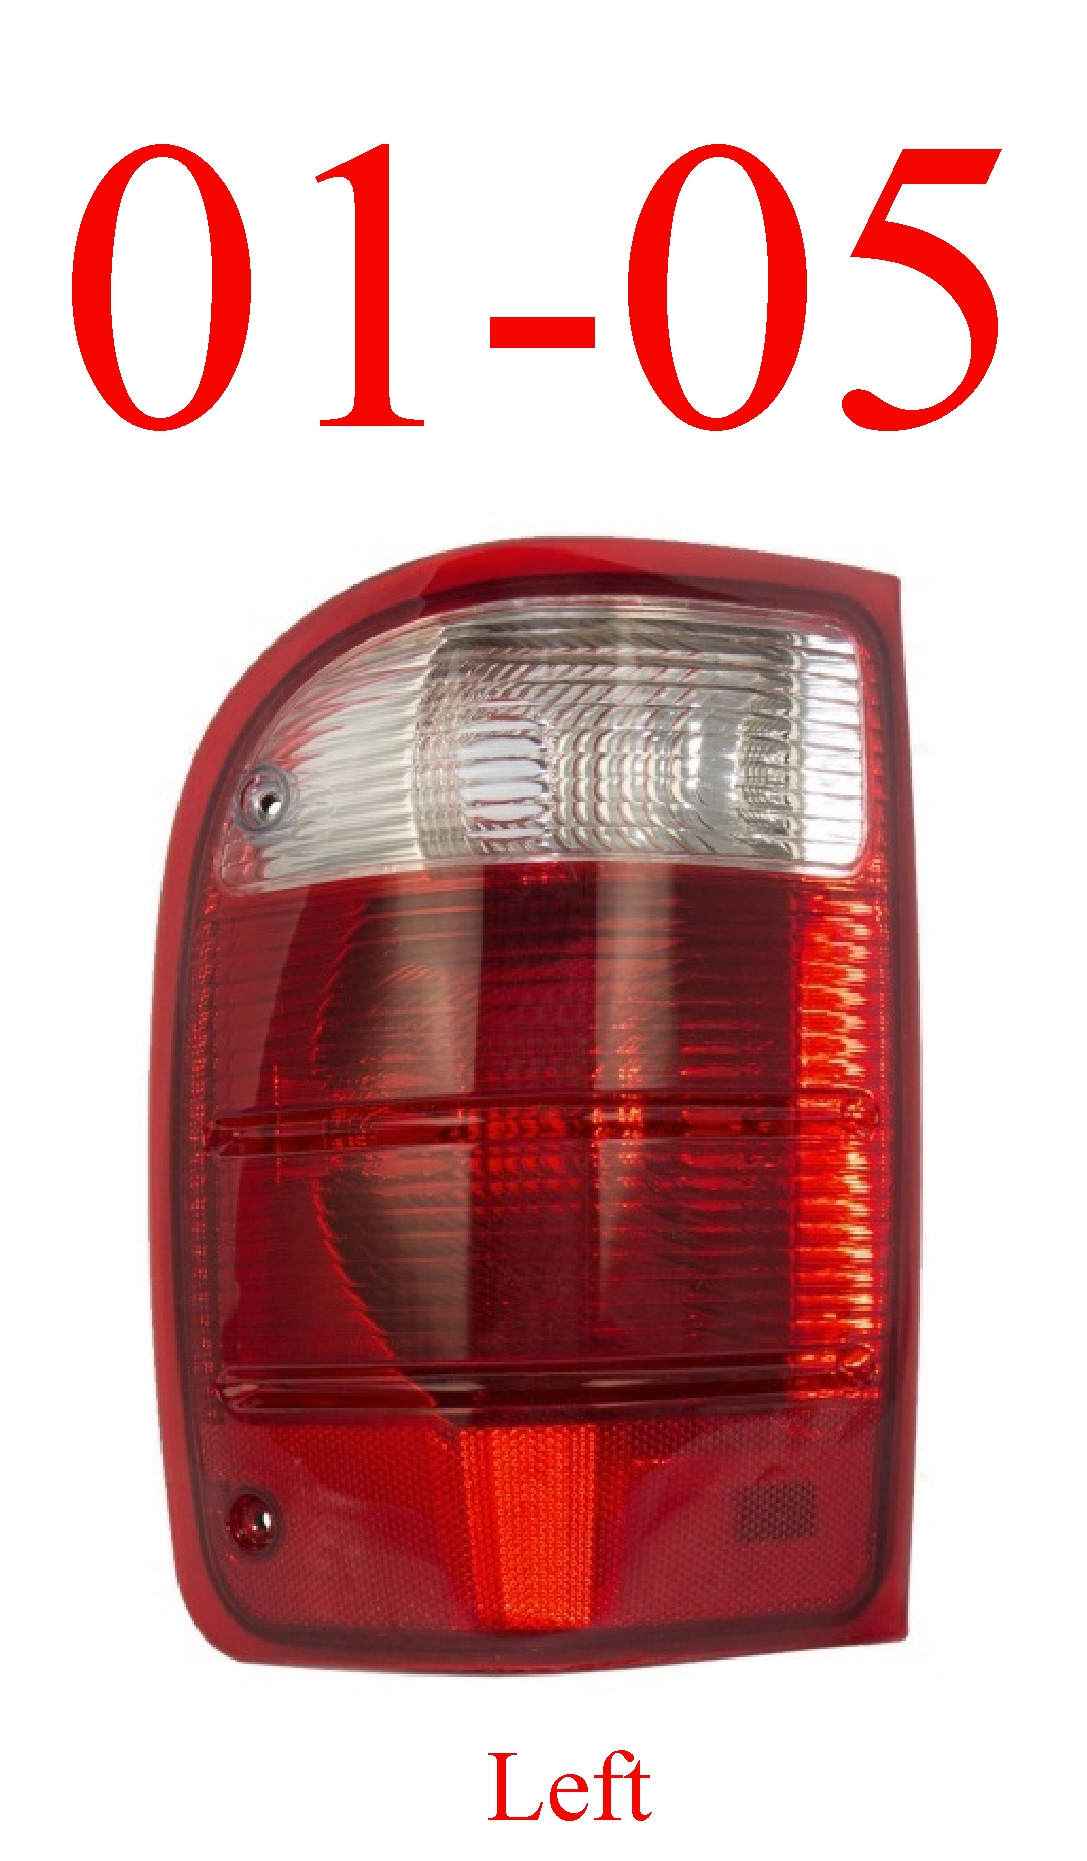 01-05 Ranger Left Tail Light Assembly